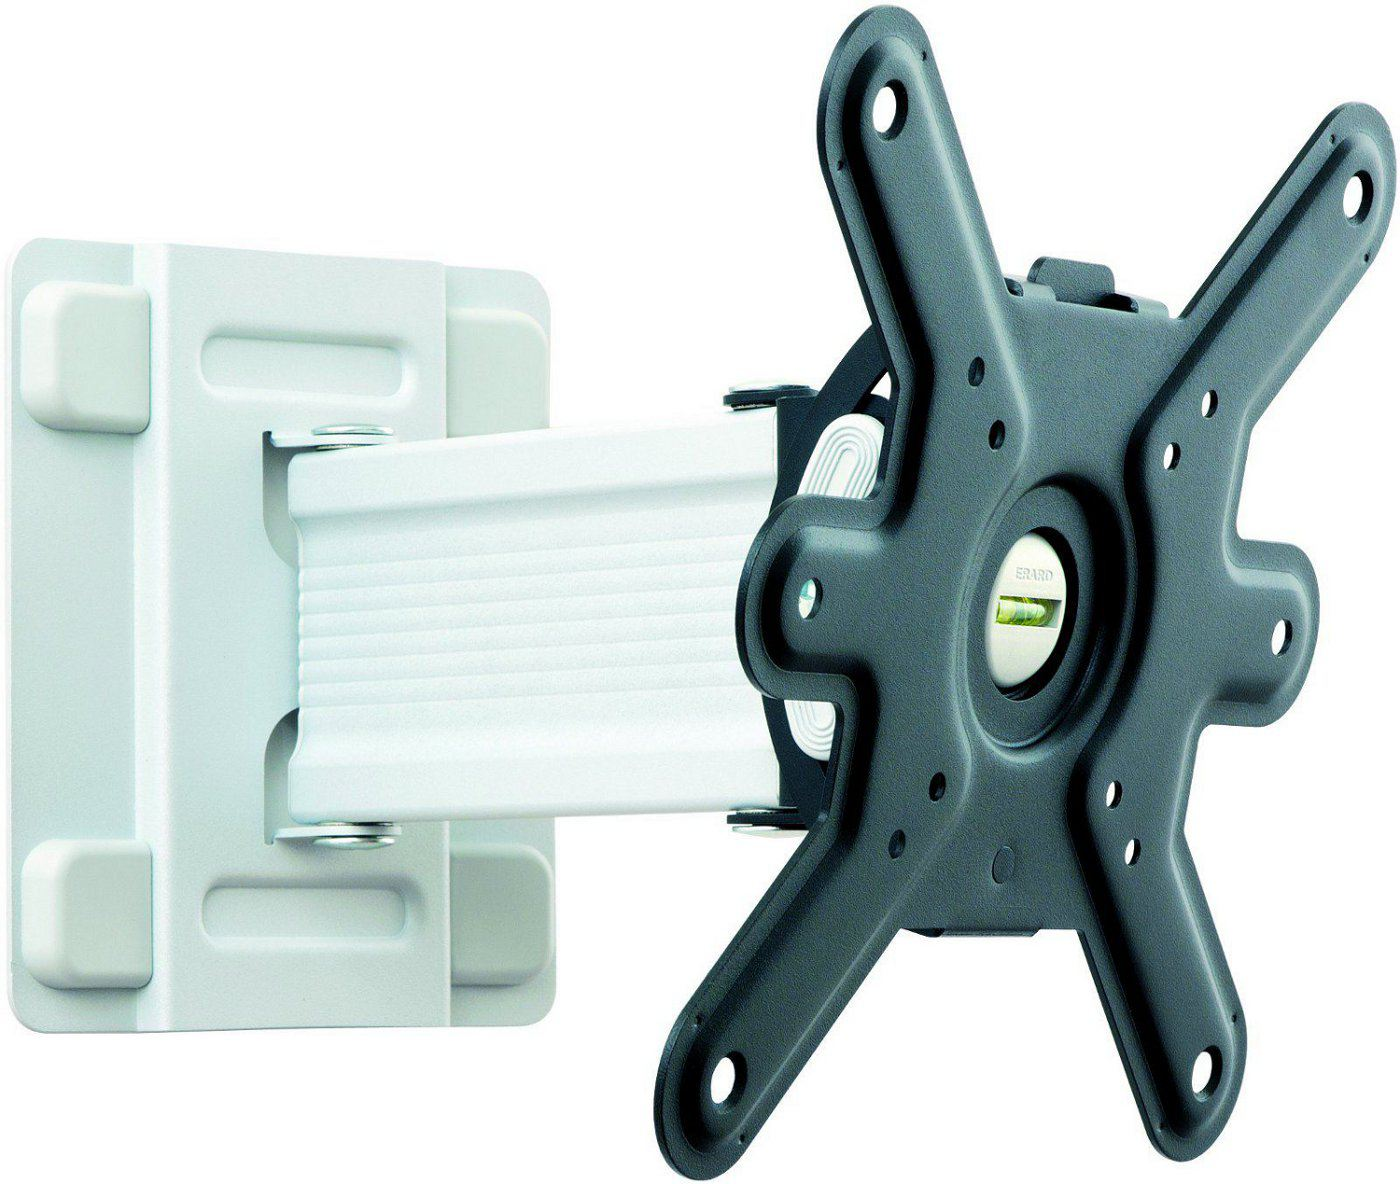 Erard - Support mural orientable-inclinable CLIFF 200 TW90 (043420)